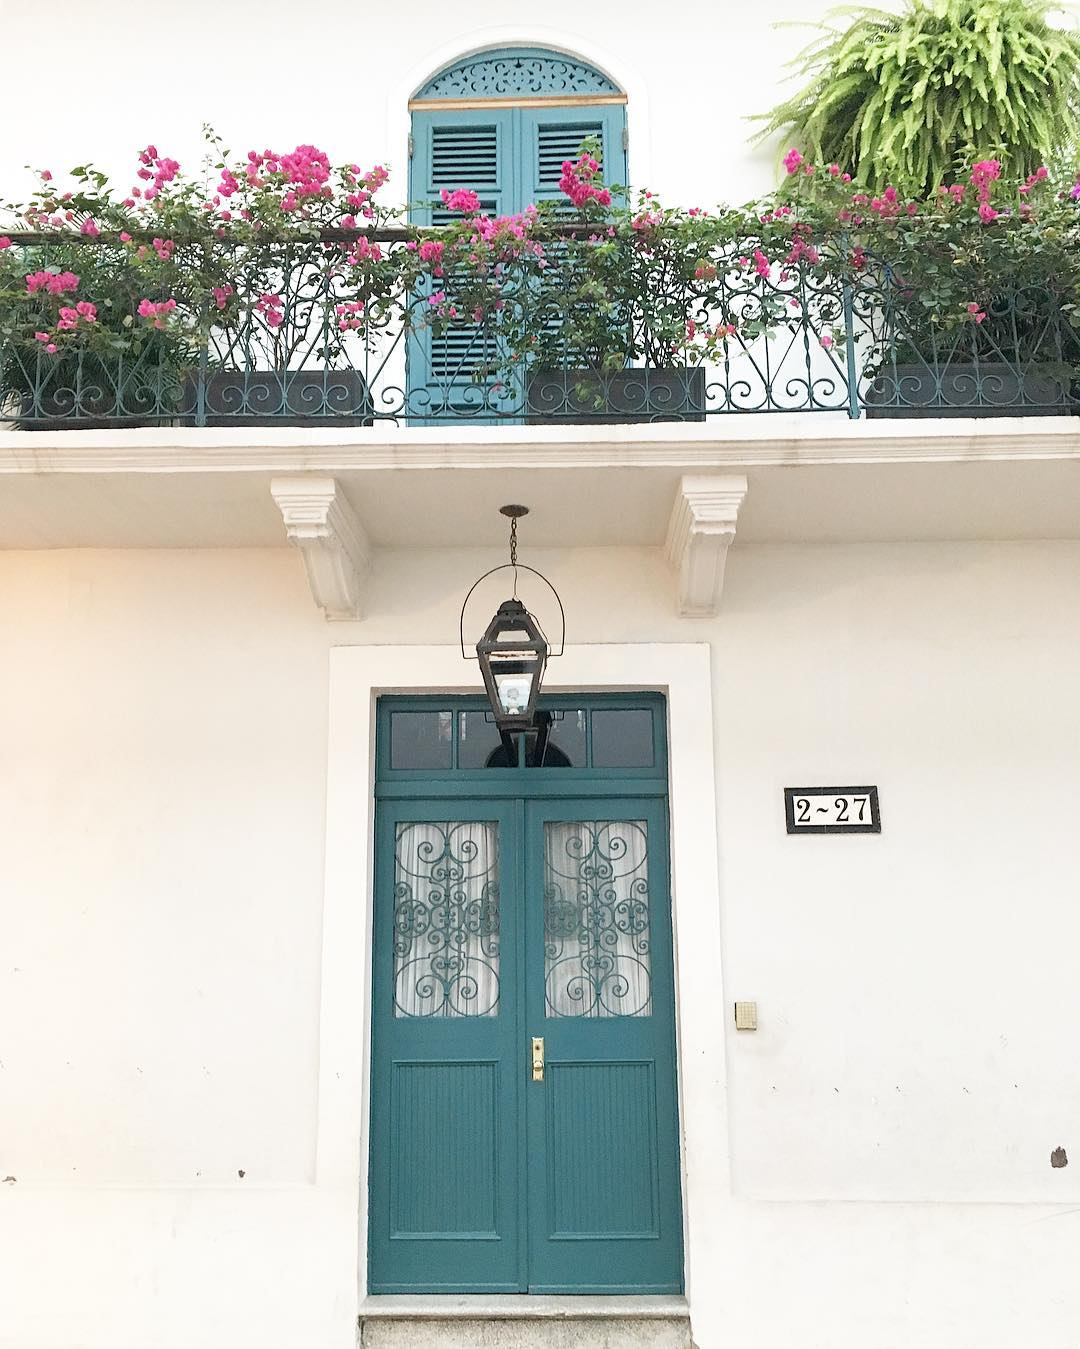 Casco Viejo knows how to dress up a doorbalcony! Lovinghellip